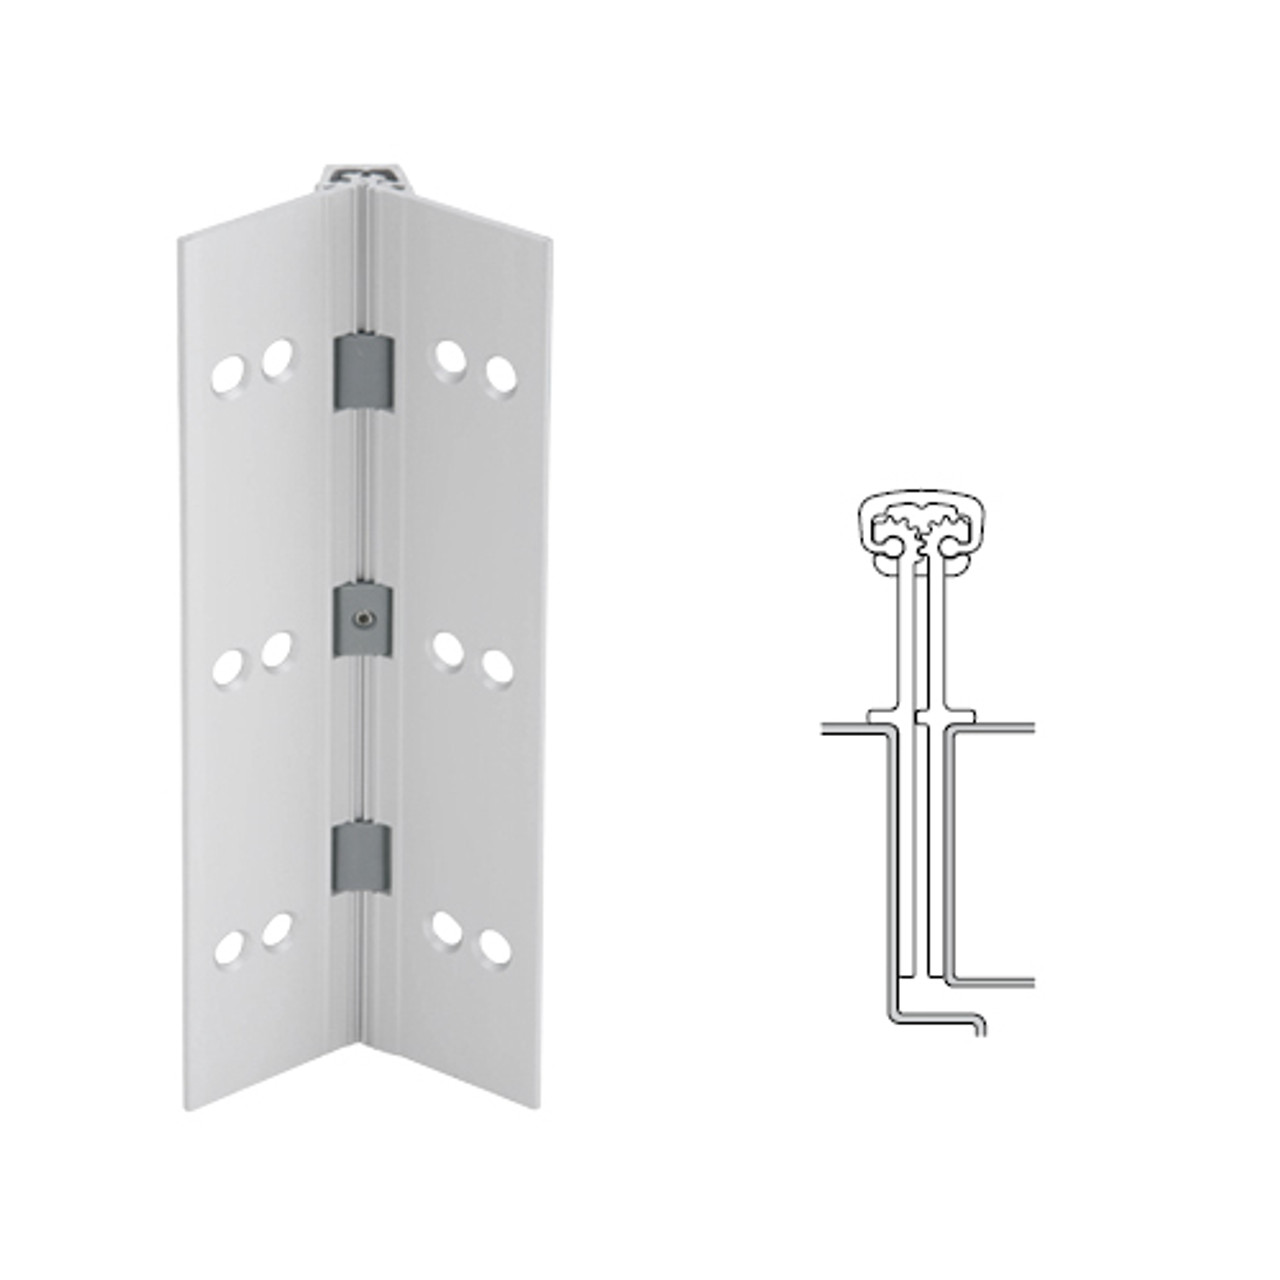 040XY-US28-85-TF IVES Full Mortise Continuous Geared Hinges with Thread Forming Screws in Satin Aluminum